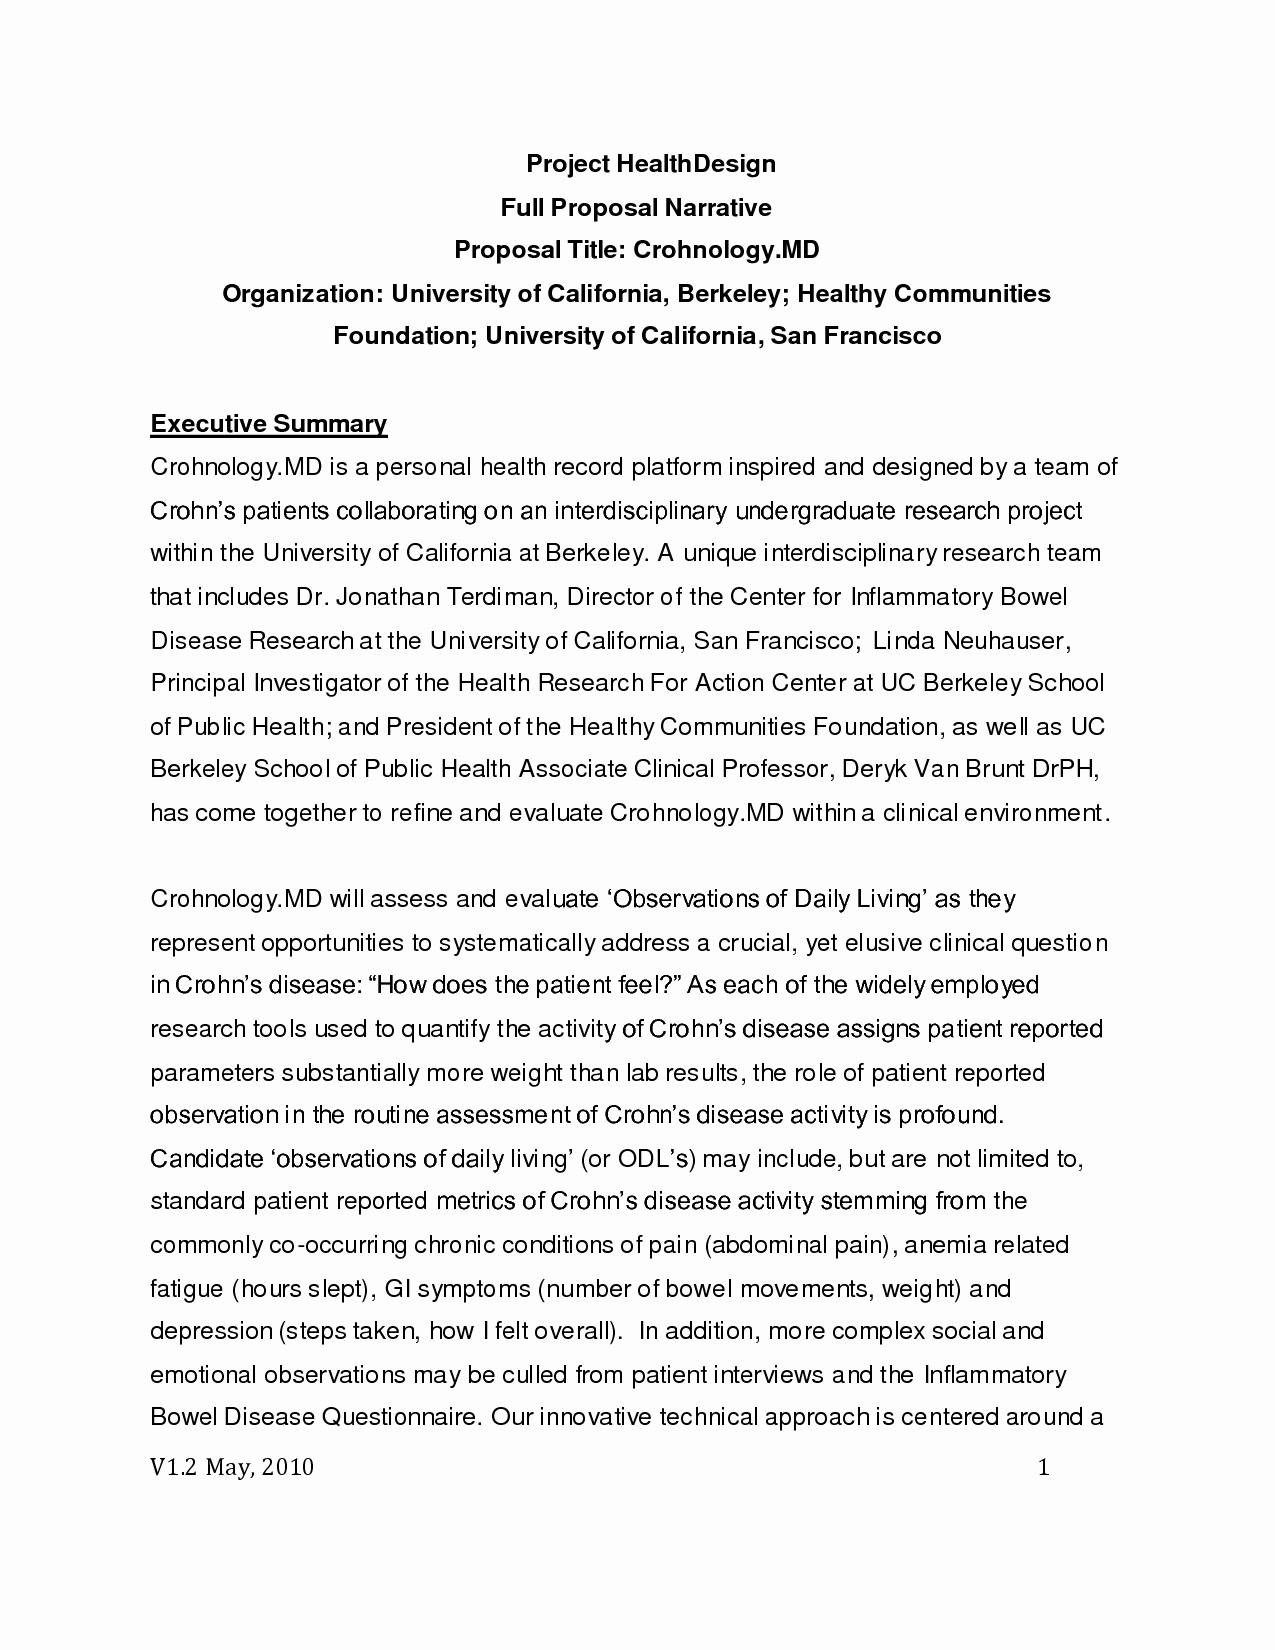 Winning Rfp Response Examples Pdf Unique [examples Executive Summary] 55 Images Music